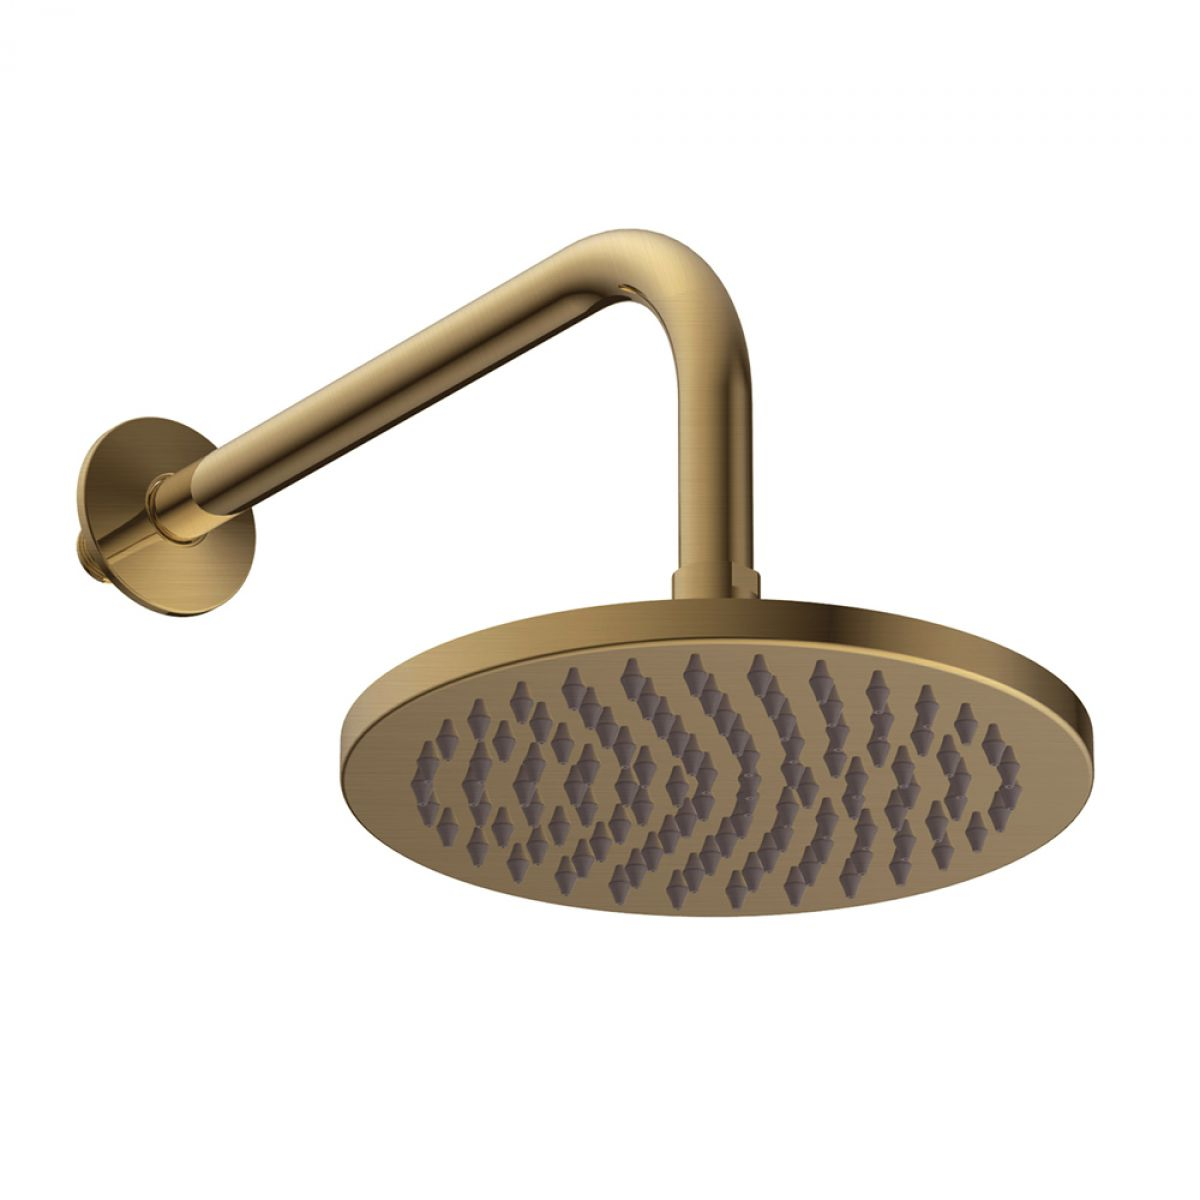 Britton Hoxton Shower Head with Wall Mounted Arm